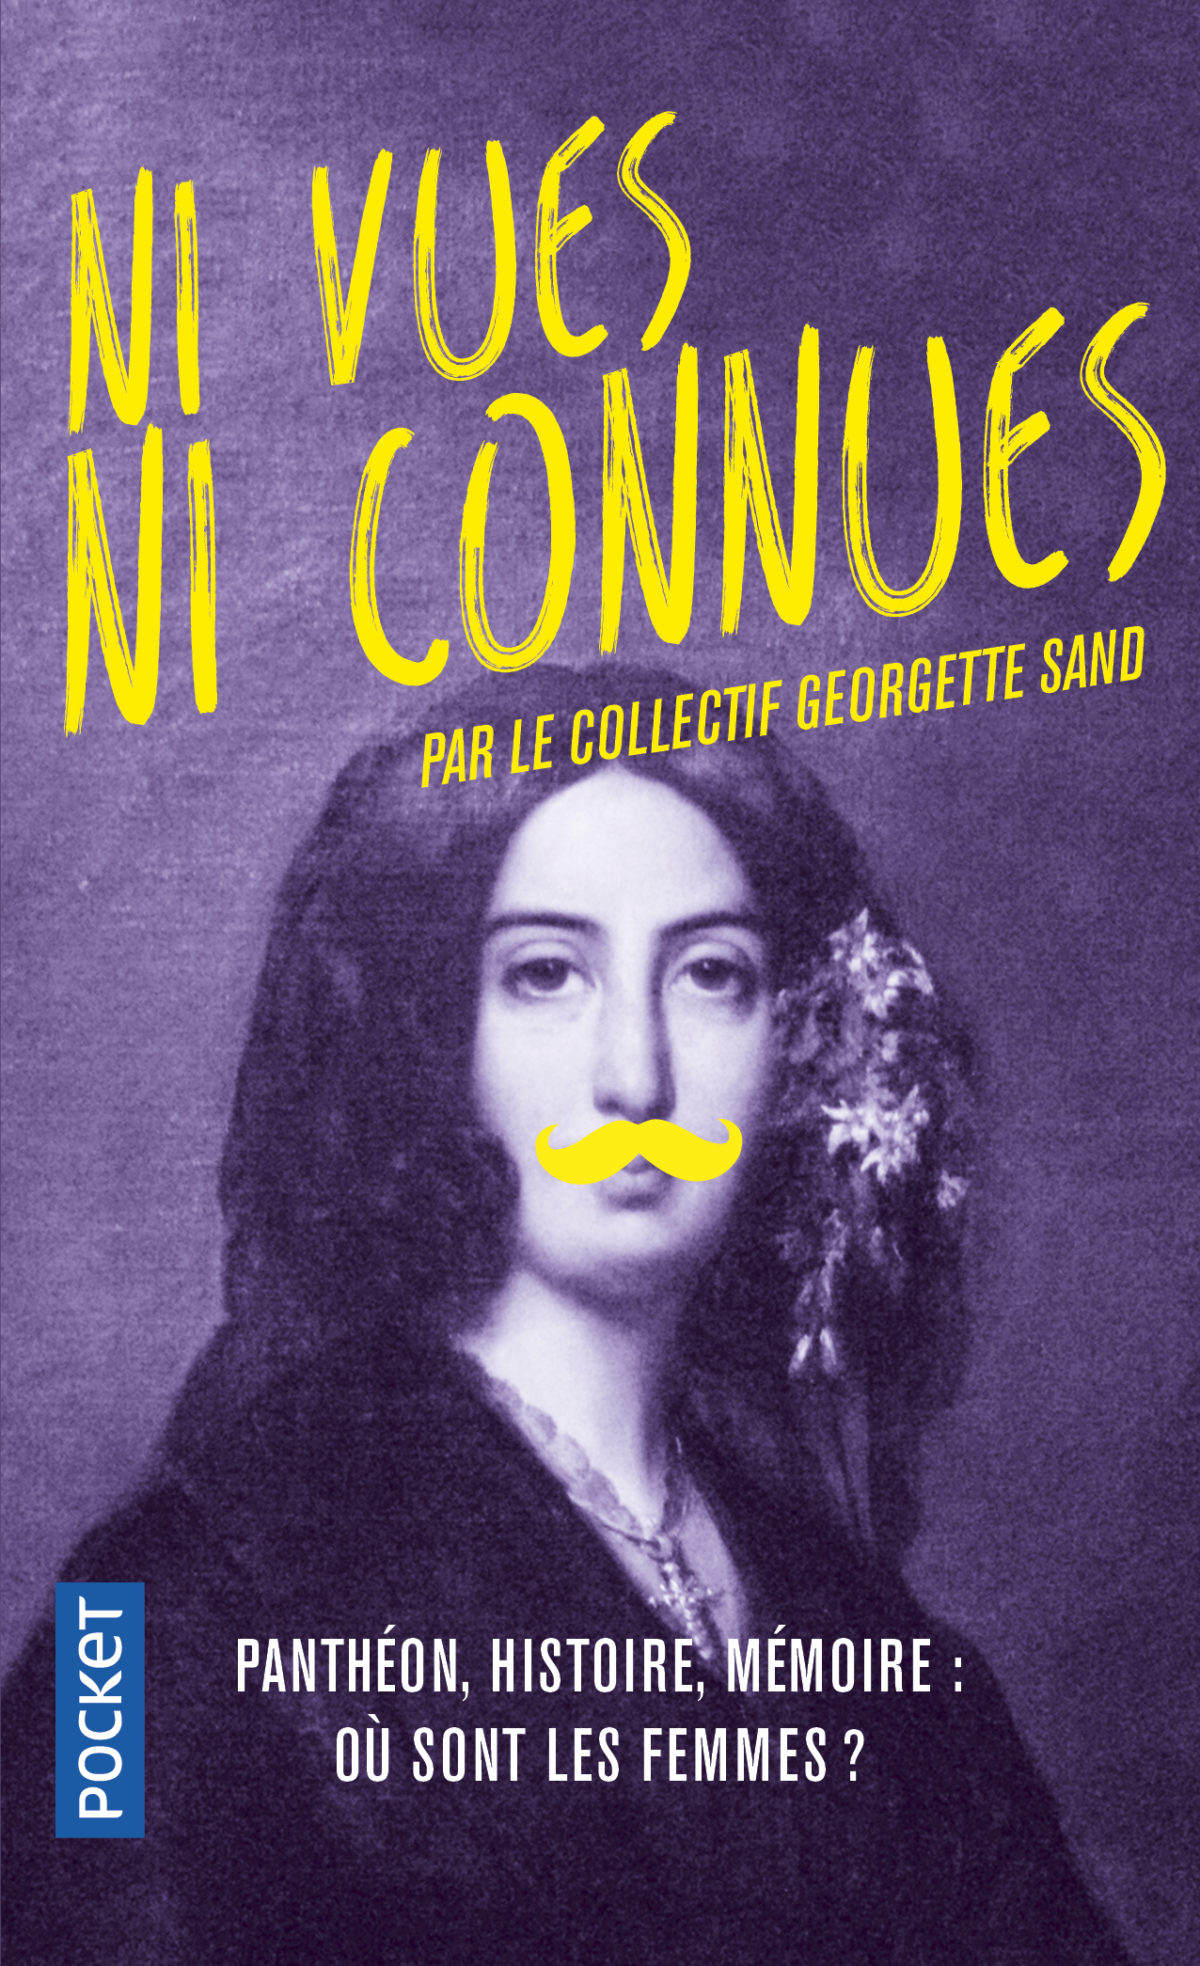 Ni vues, ni connues – collectif Georgette Sand